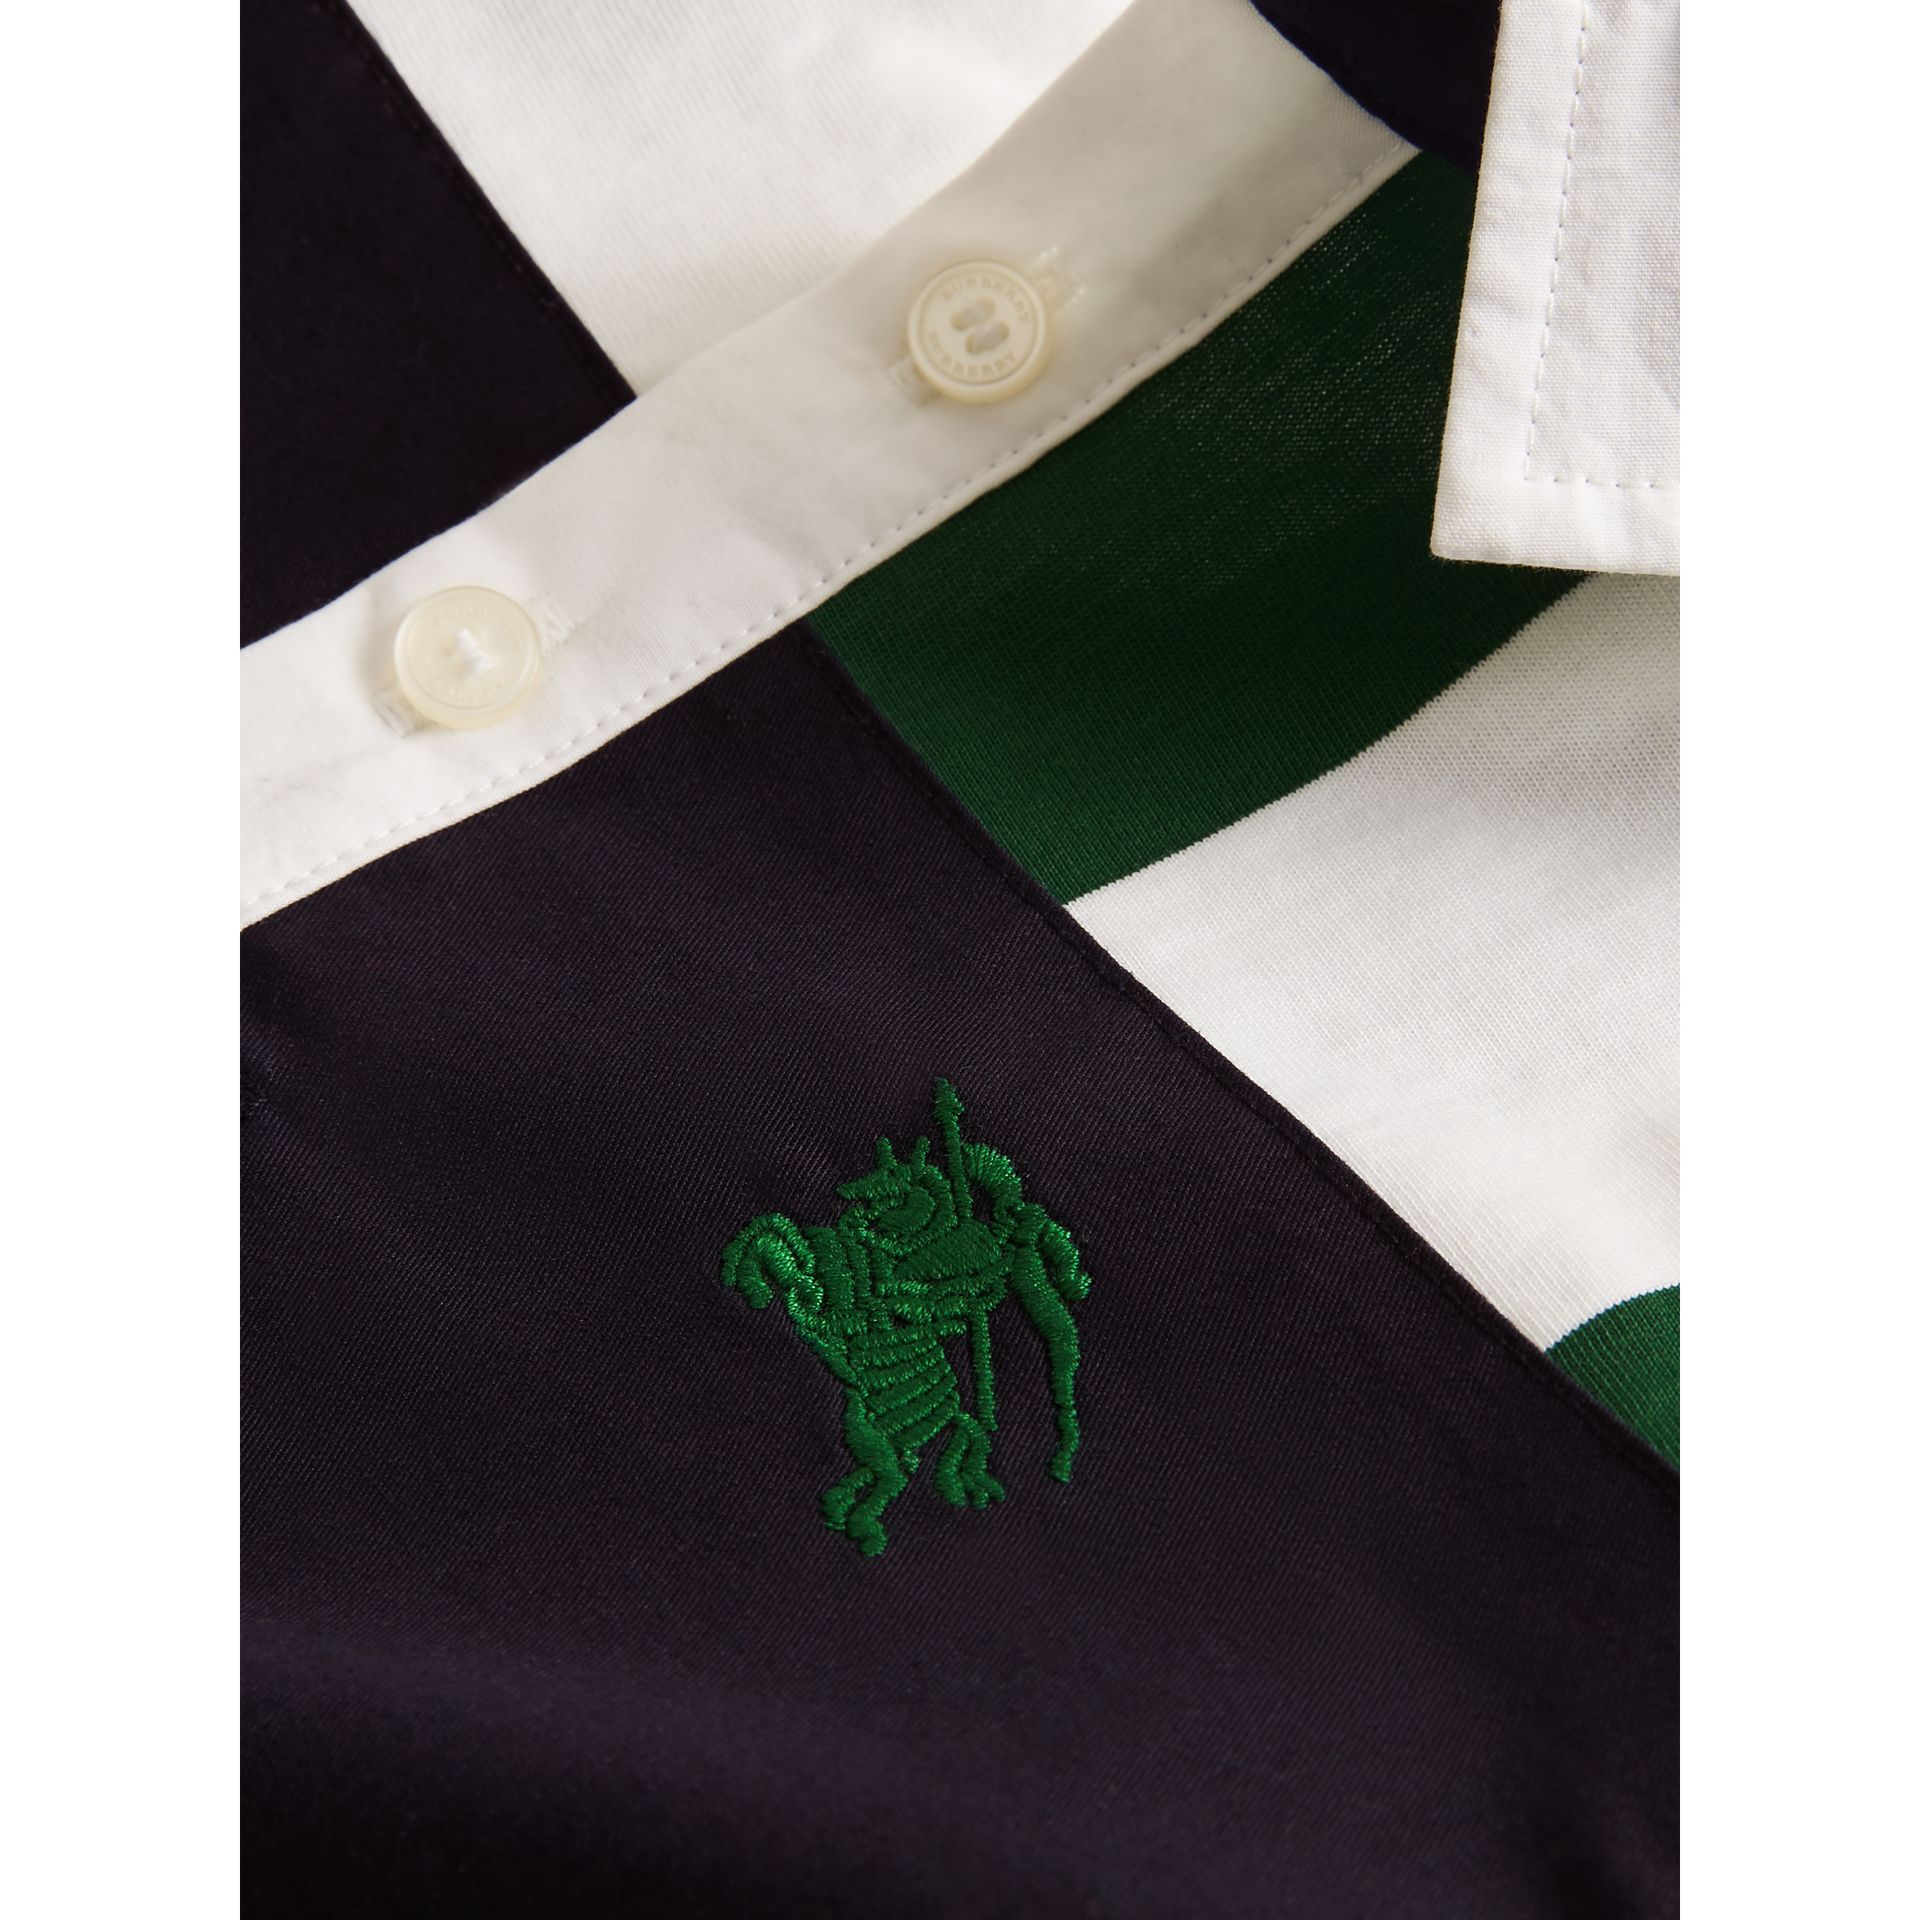 Polo en coton rayé à manches longues (Vert Racing/blanc) | Burberry - photo de la galerie 1